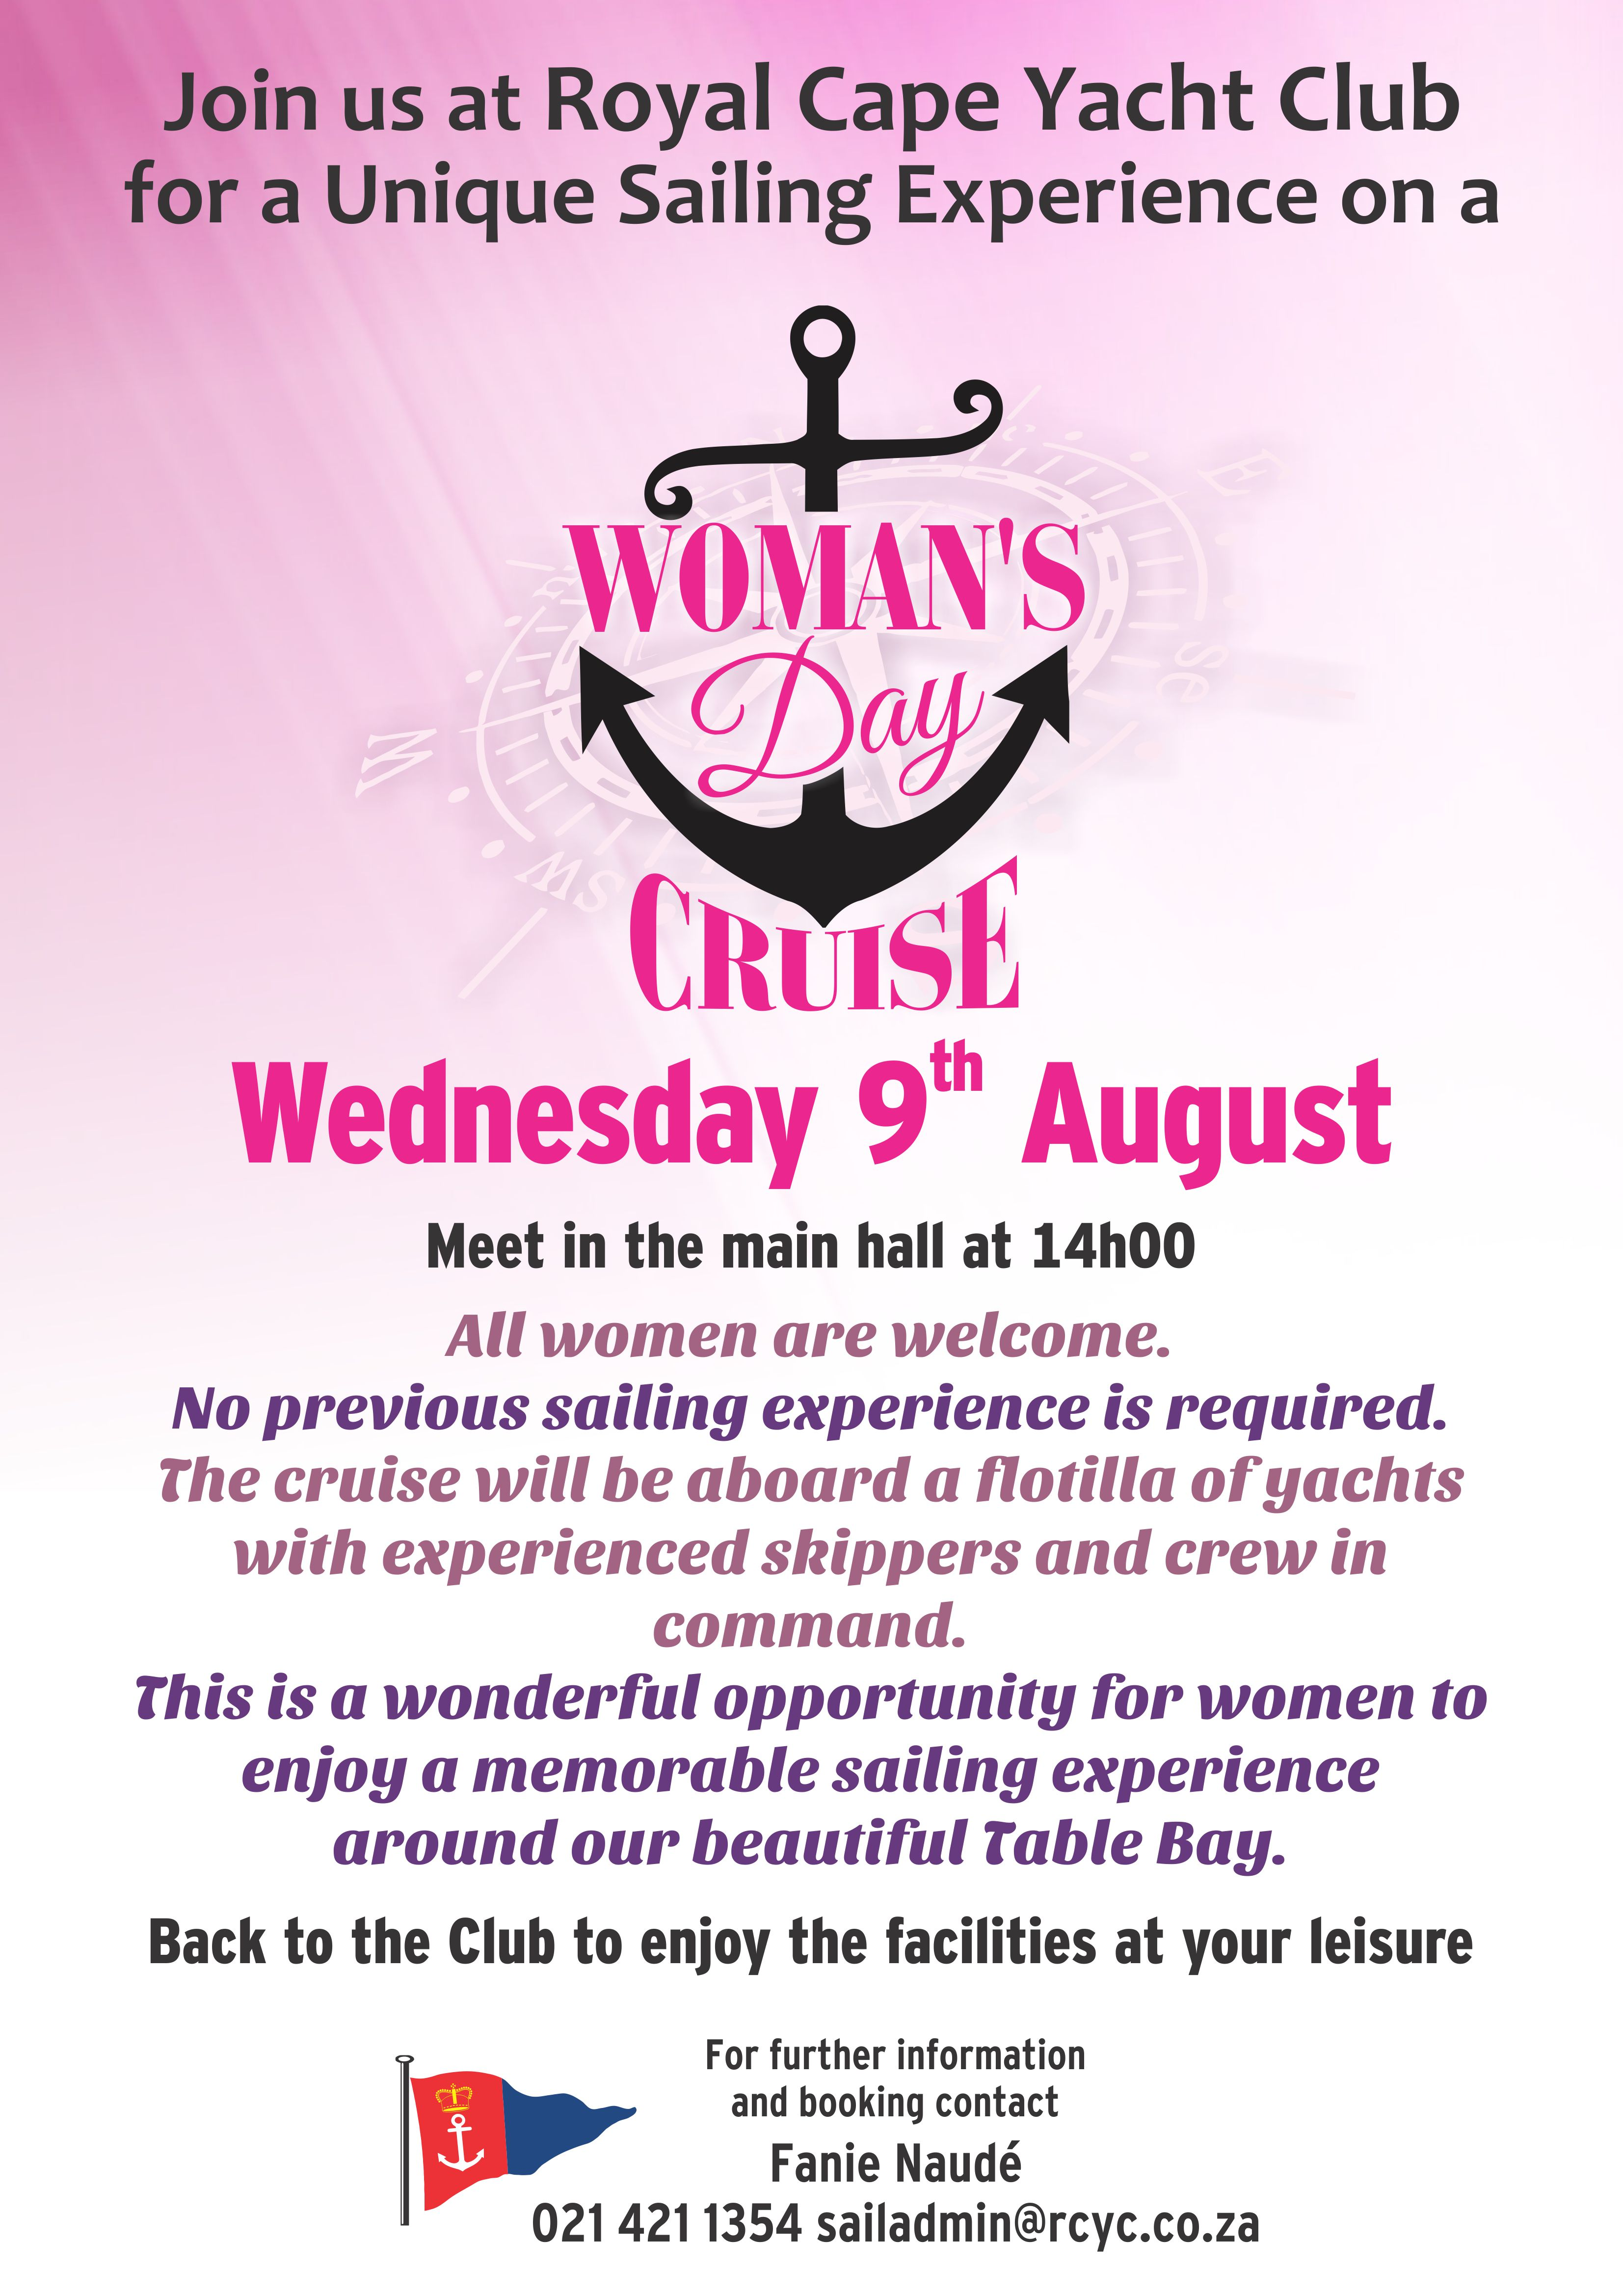 Women's Day Cruise